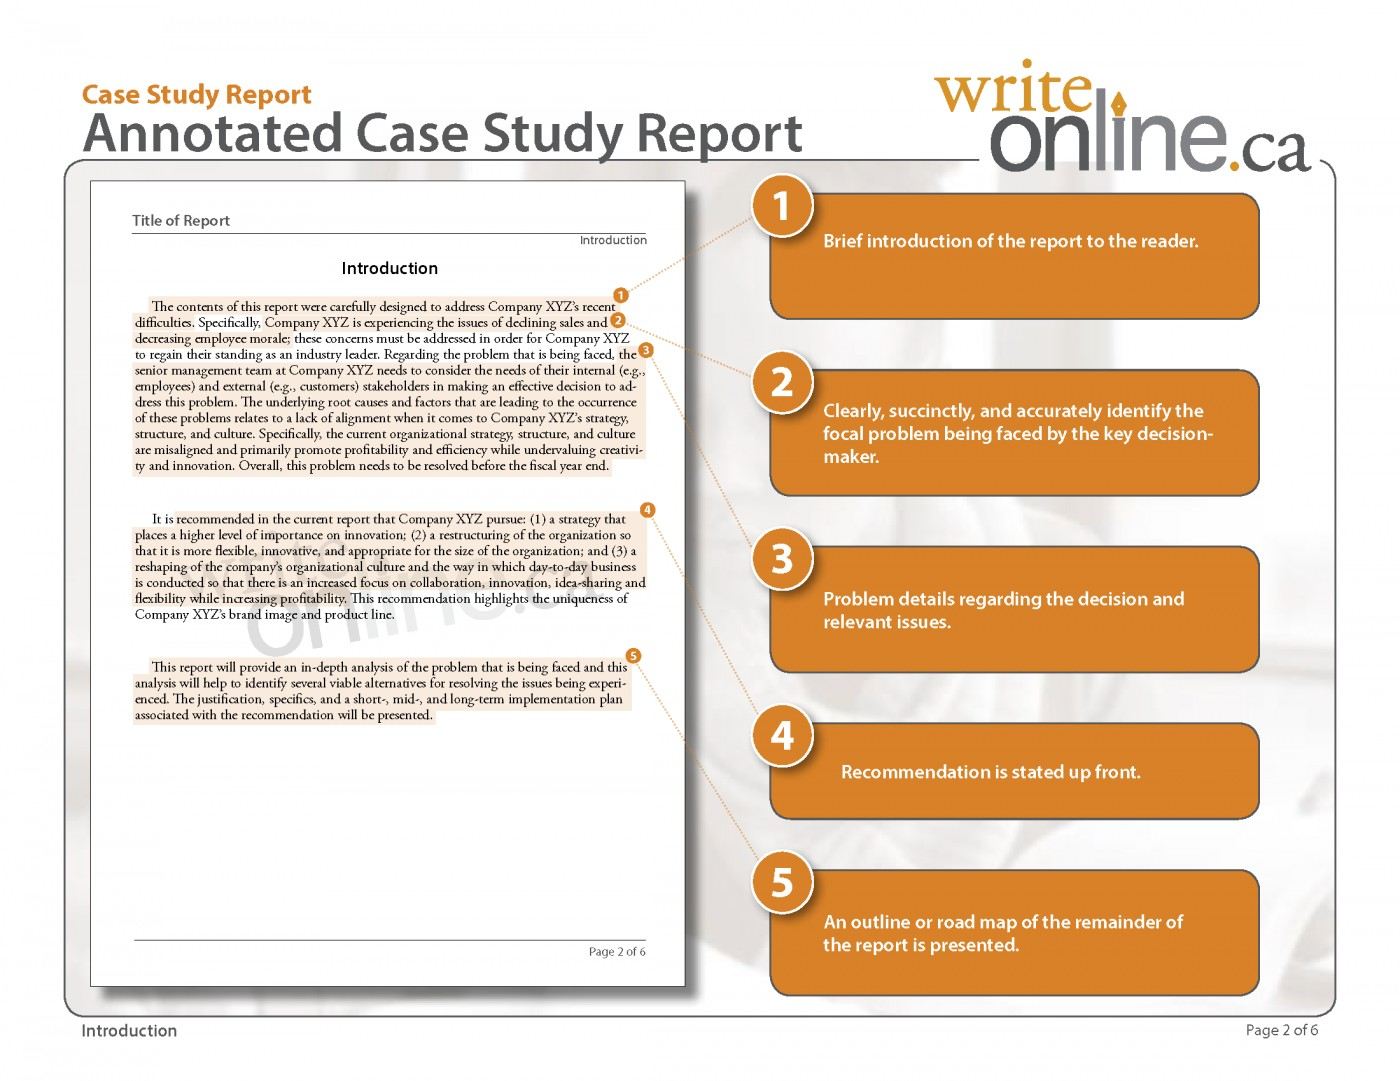 009 Research Paper Casestudy Annotatedfull Page 2 Component Of Archaicawful Pdf Parts Chapter 1 Quantitative 1400